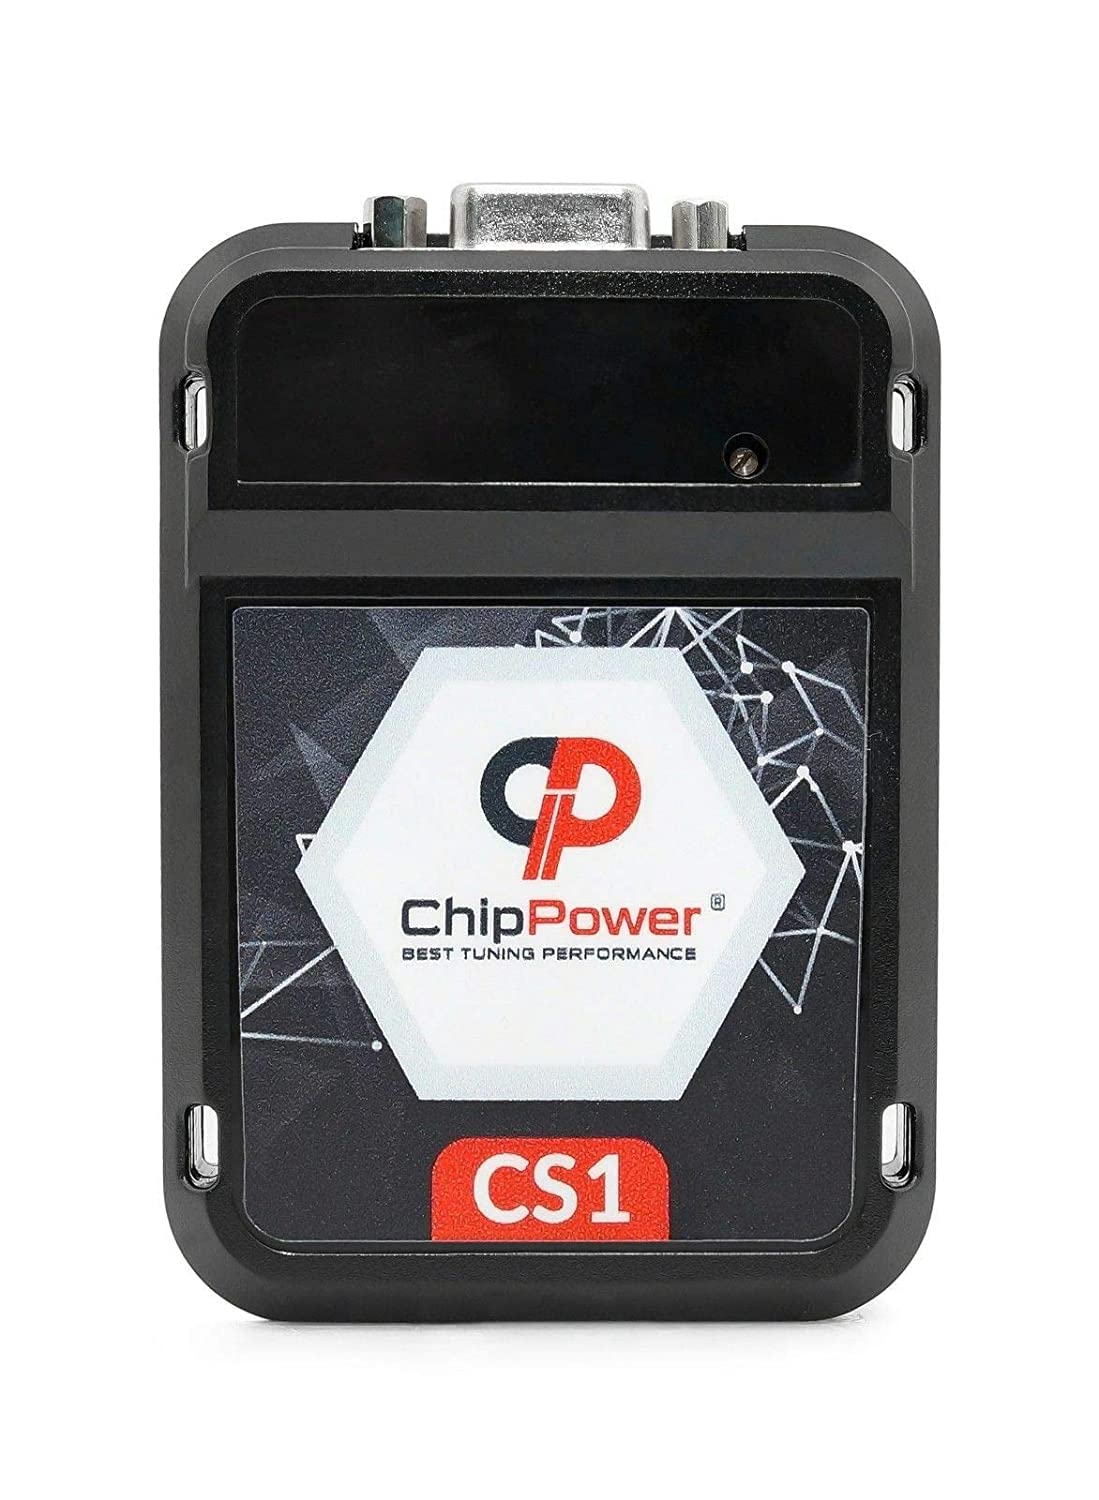 Chip Box Tuning CS1 for COMBO B 1.7 DI 48kW 65HP 2001-2006 Performance Diesel